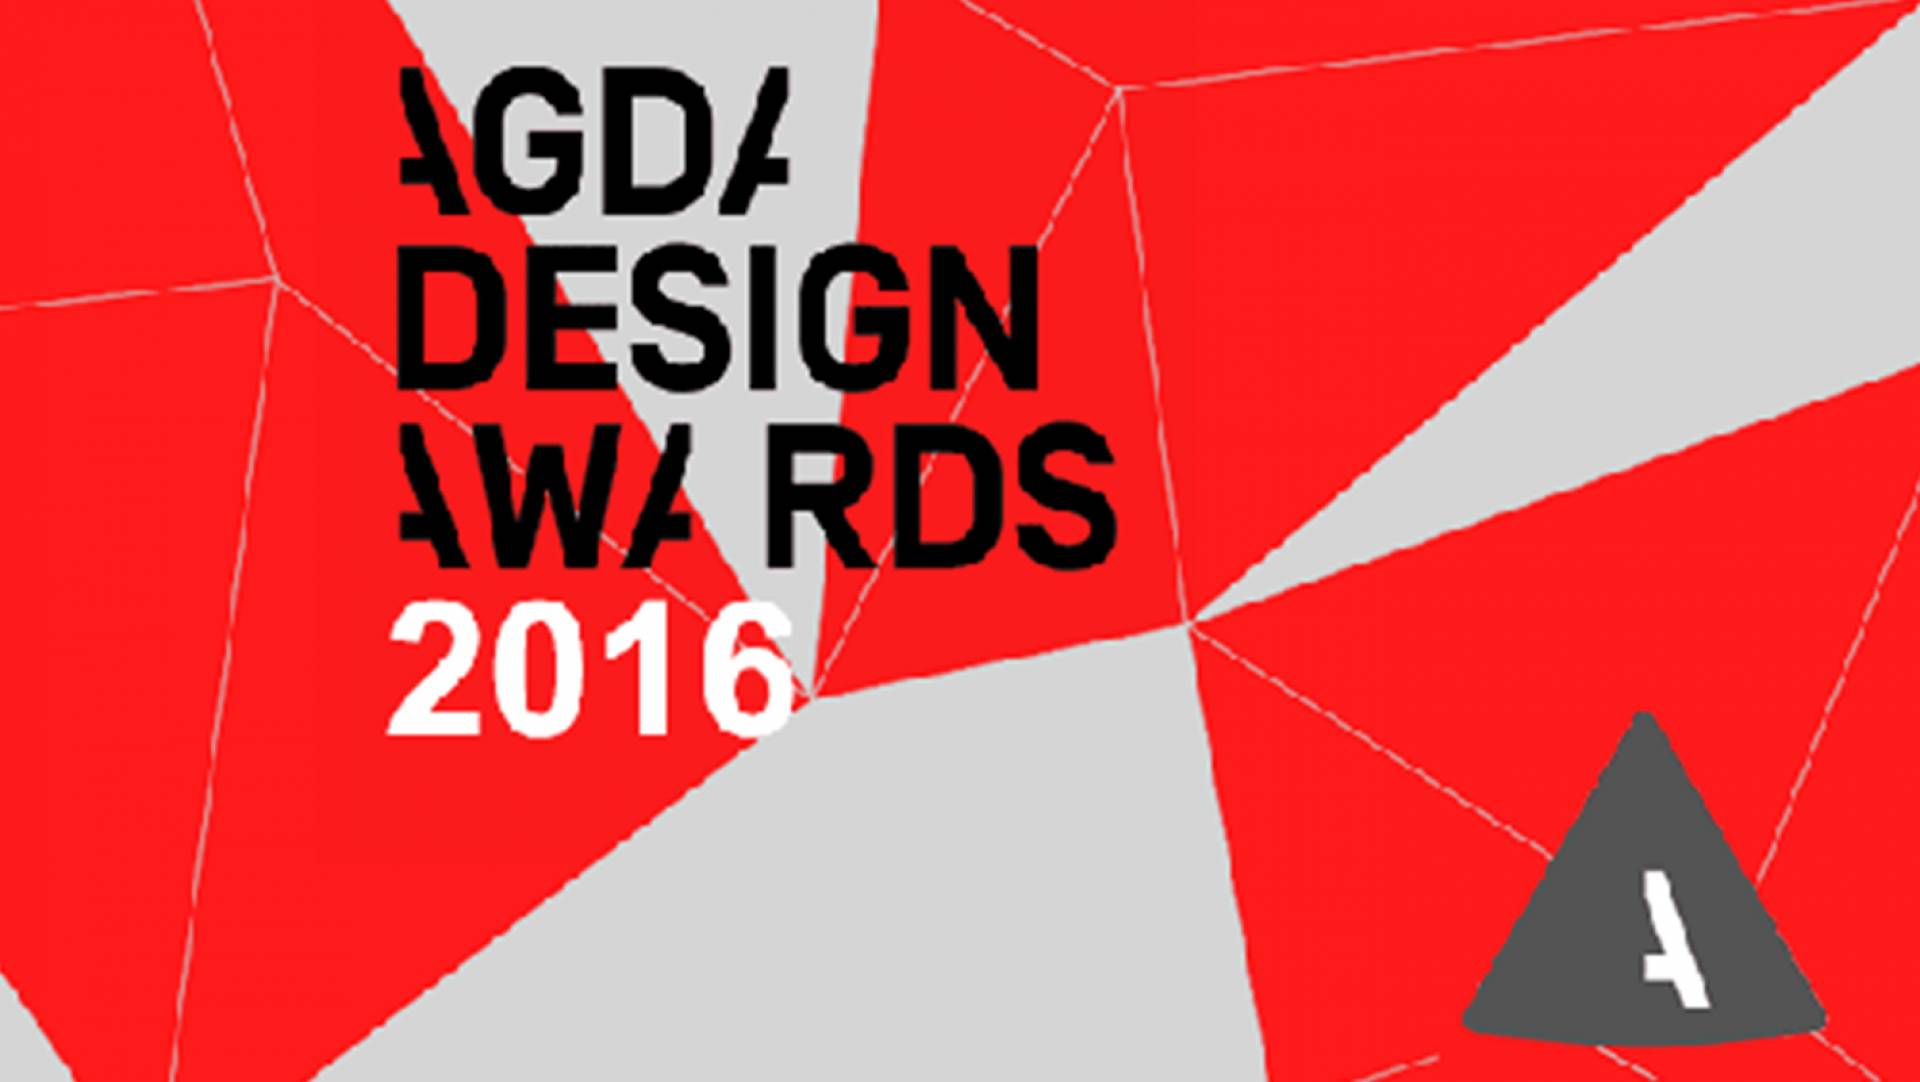 Studio Equator Finalists For AGDA Awards 2016 - Chalawan & Jax Coco